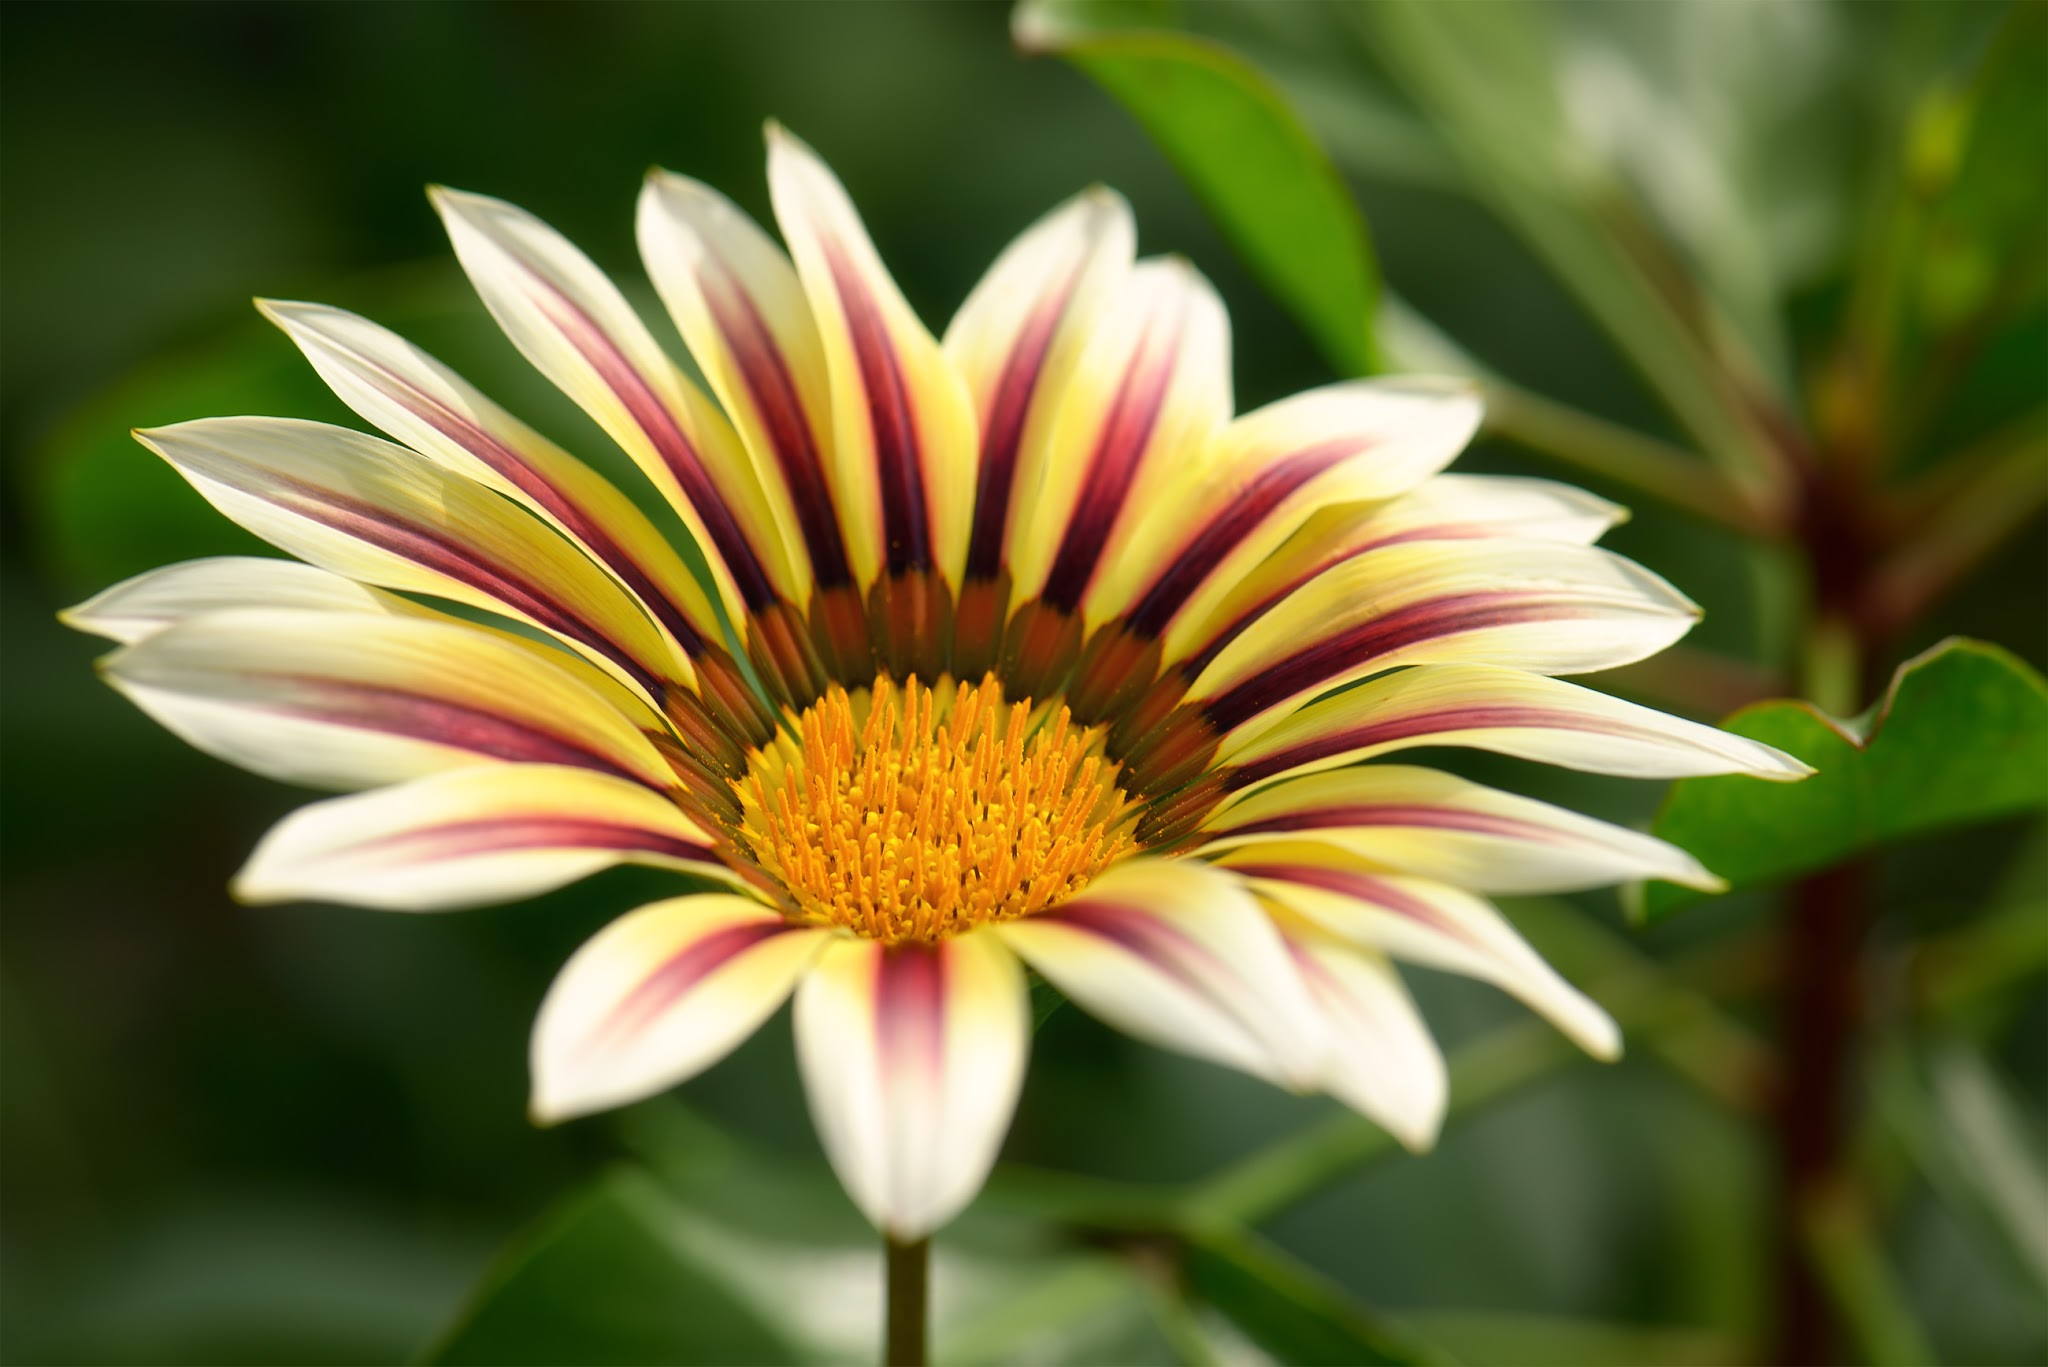 Photo: Another Gazania photo~ I am still off from work (I could really get used to being on vacation ;) Aside from spending time with visiting family, it also gives me some time to go through my photos :)  #Flowerphotography  #Nature  #Flora  #Gazania